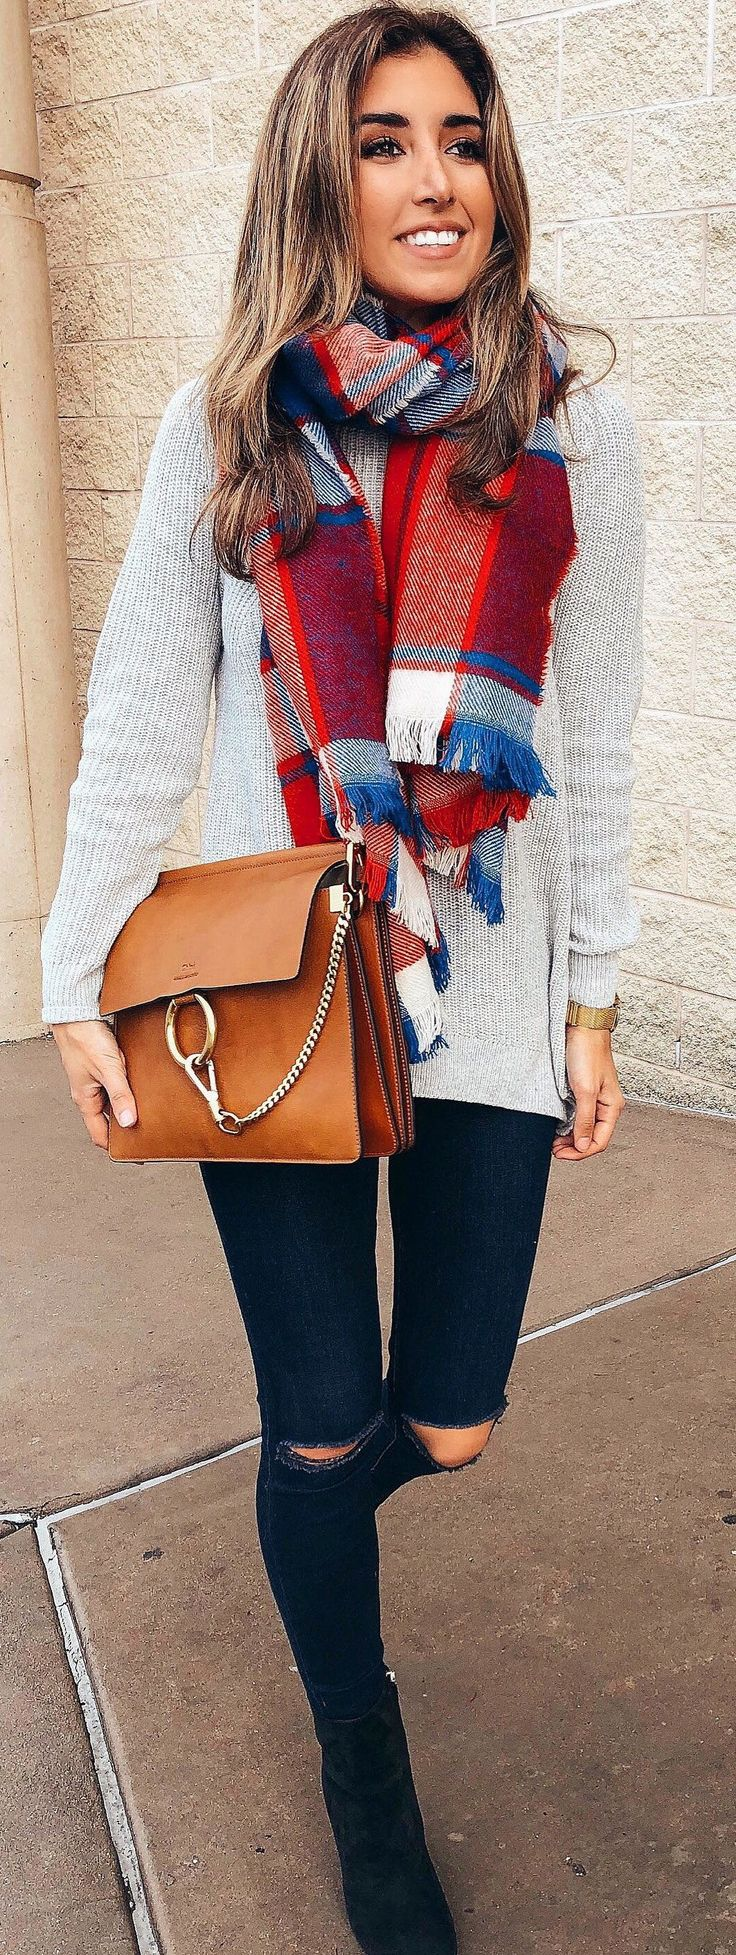 #winter #outfits  gray sweater; brown leather shoulder bag; red and blue scarf; black distressed jeans #ShoulderBags